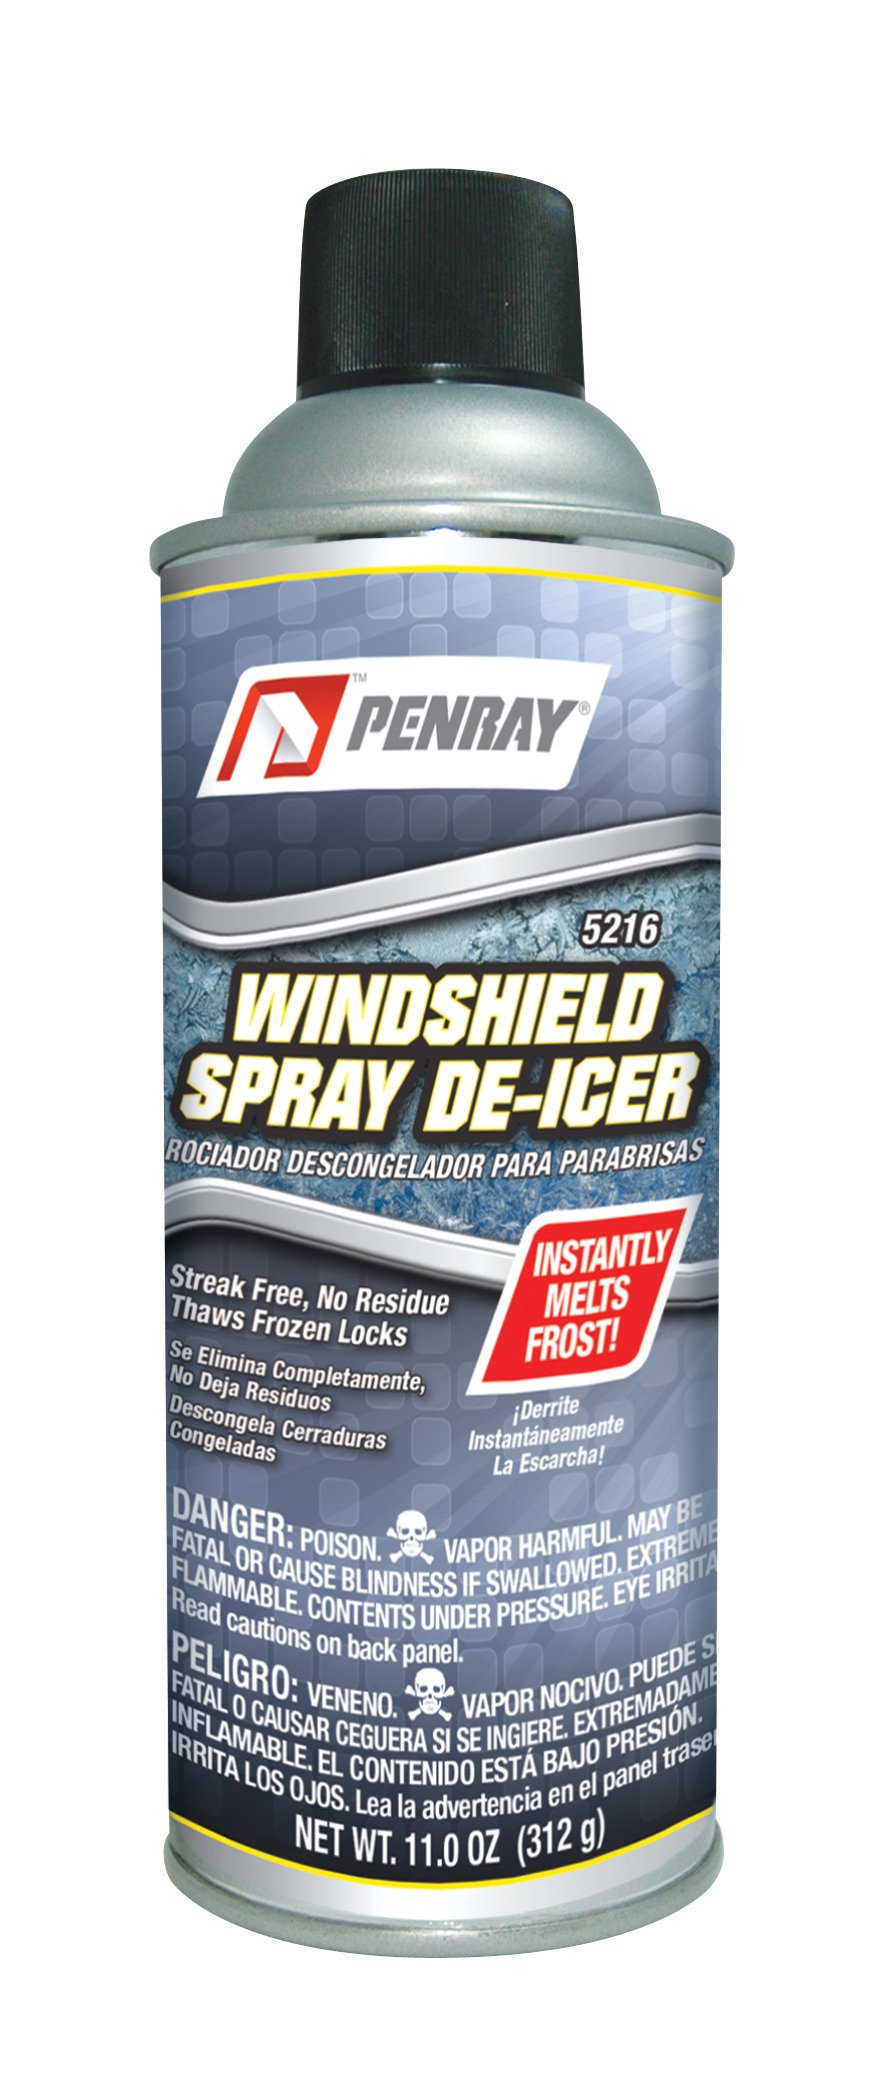 Penray 5216 Windshield Spray De-Icer - 11.0-Ounce Aerosol Can (case of 12) by The Penray Companies